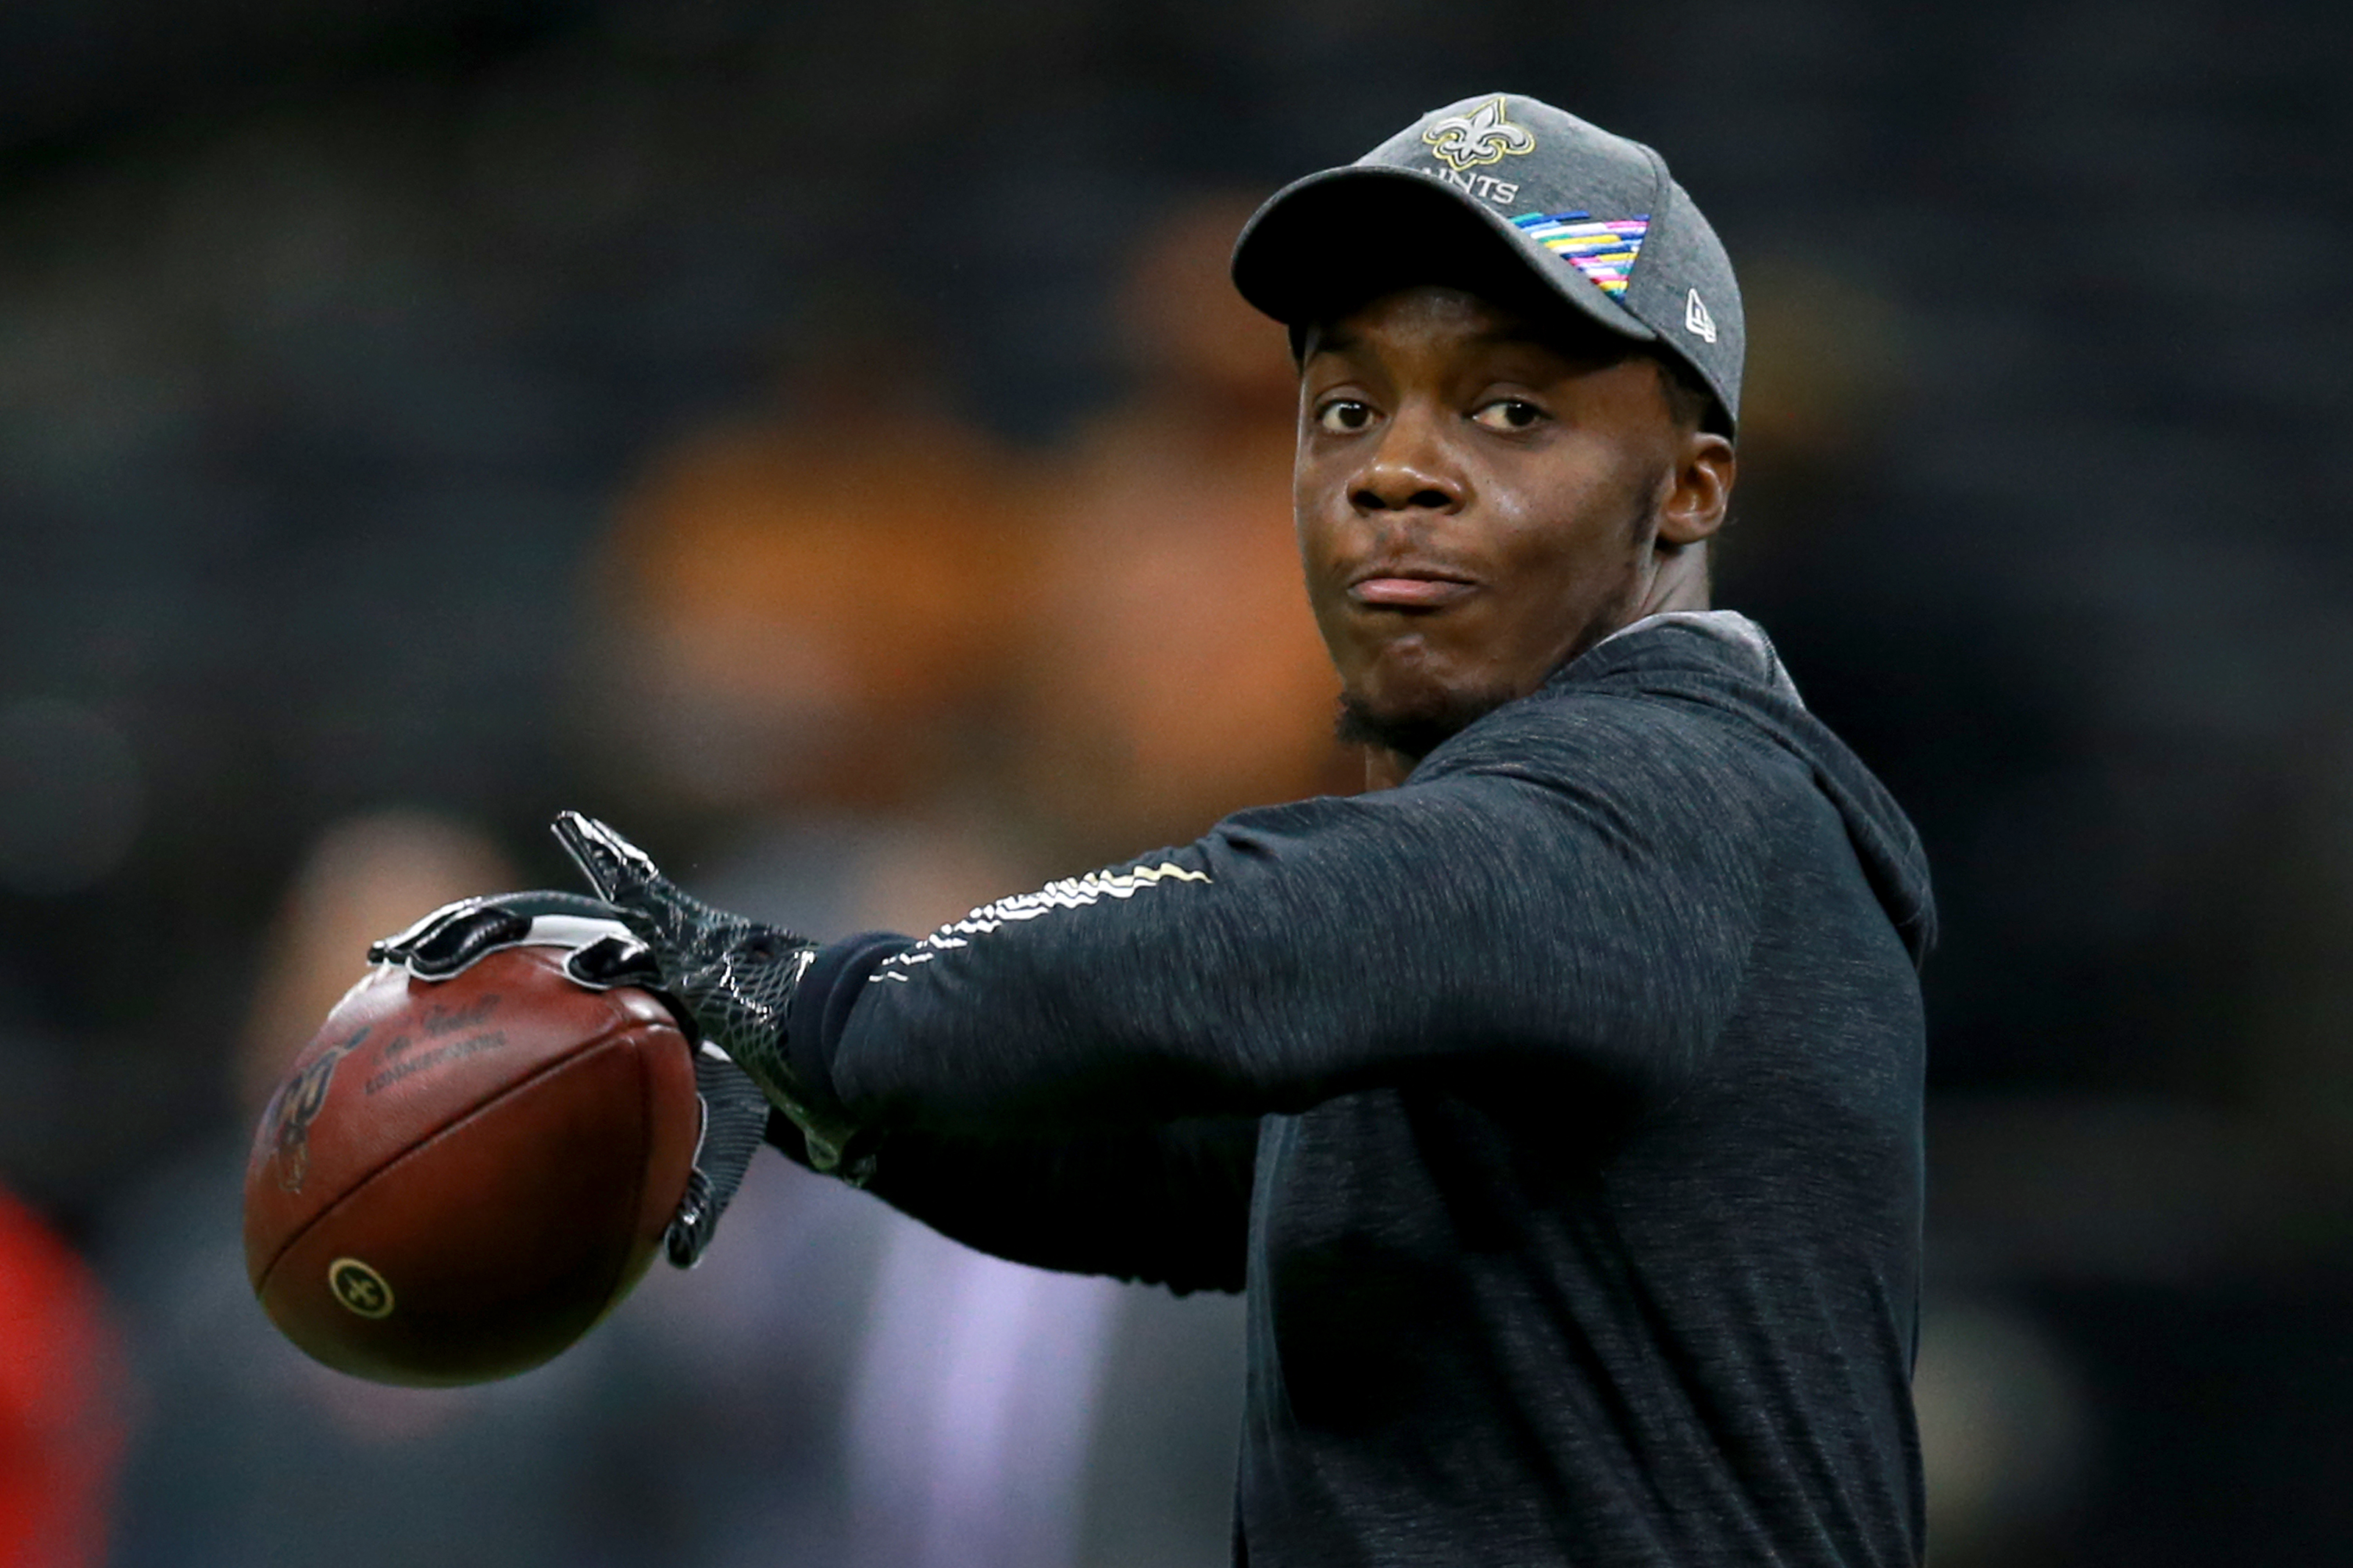 Carolina Panthers: Teddy Bridgewater will thrive on offense in 2020